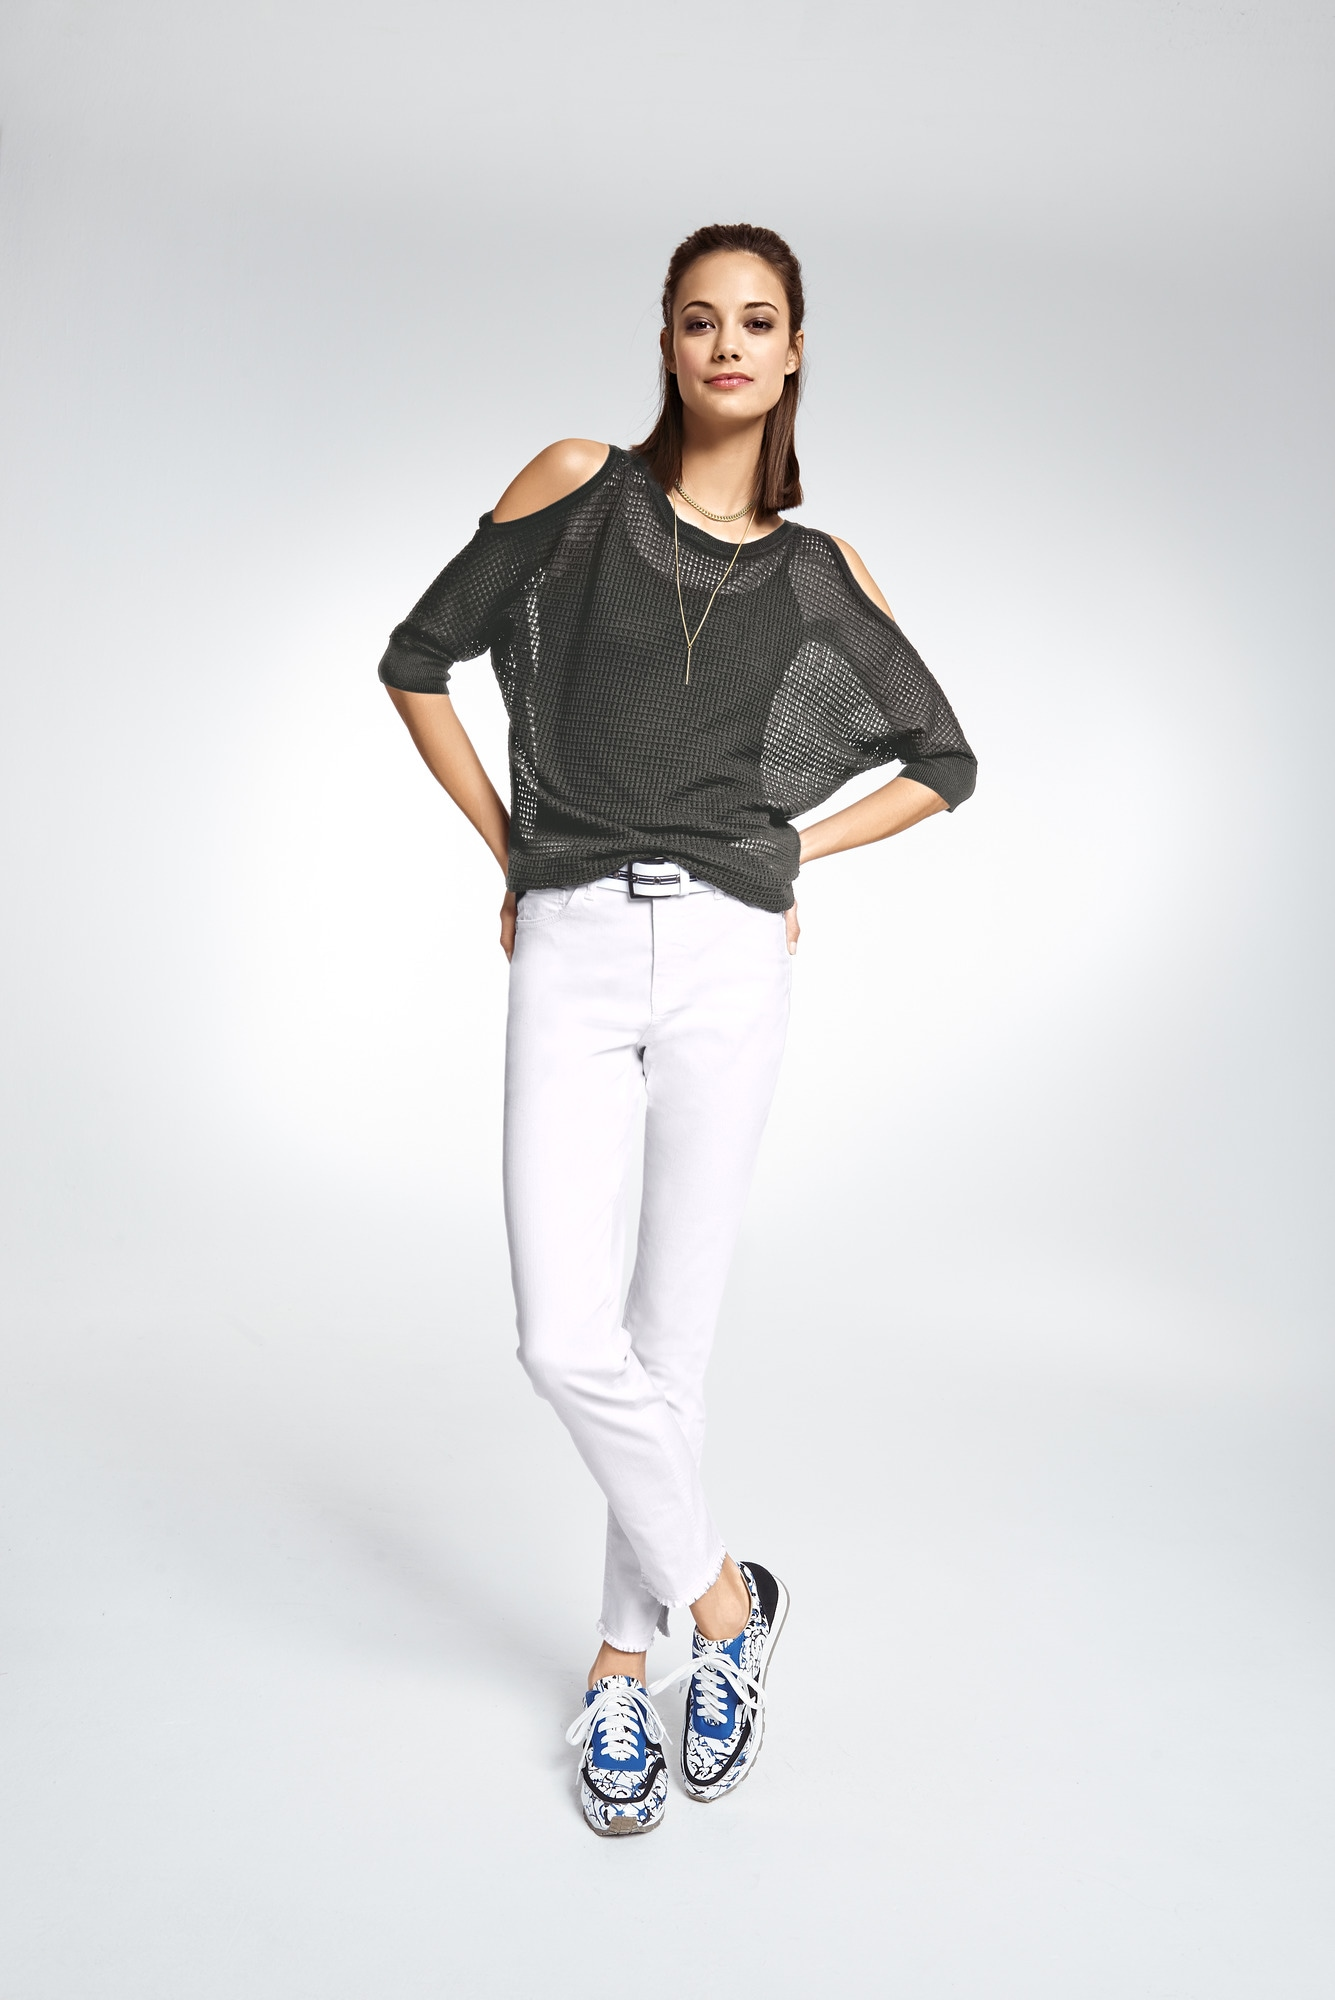 heine STYLE Longpullover mit cut outs   Bekleidung > Pullover > Longpullover   Grün   heine